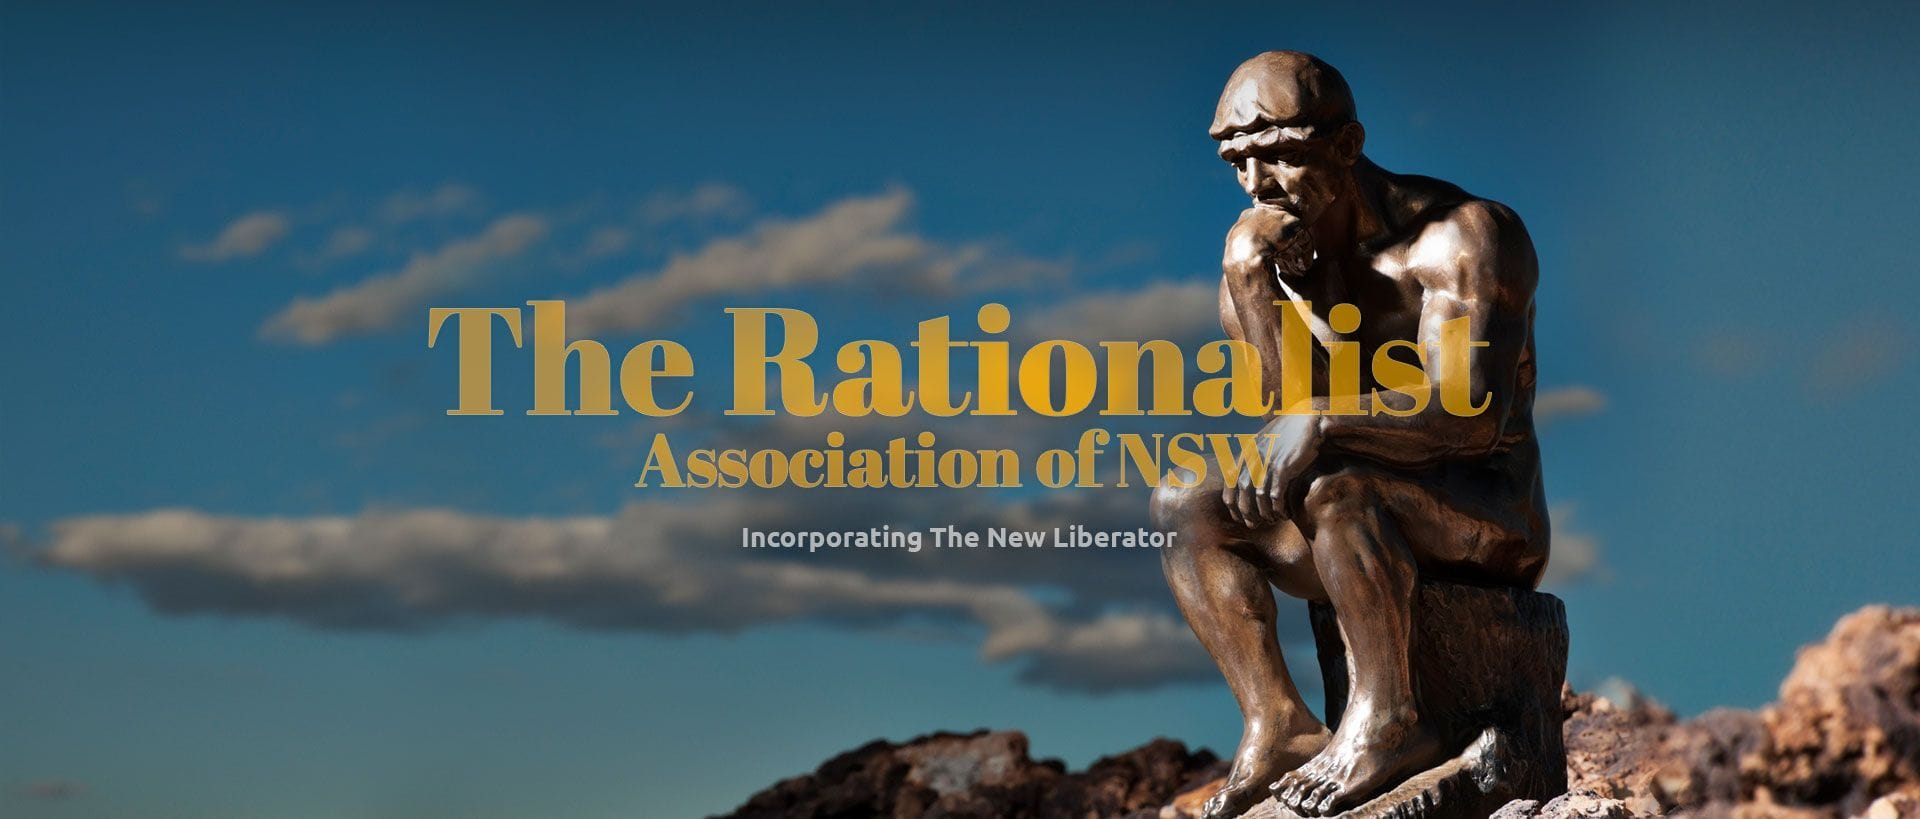 The Rationalist Association of NSW